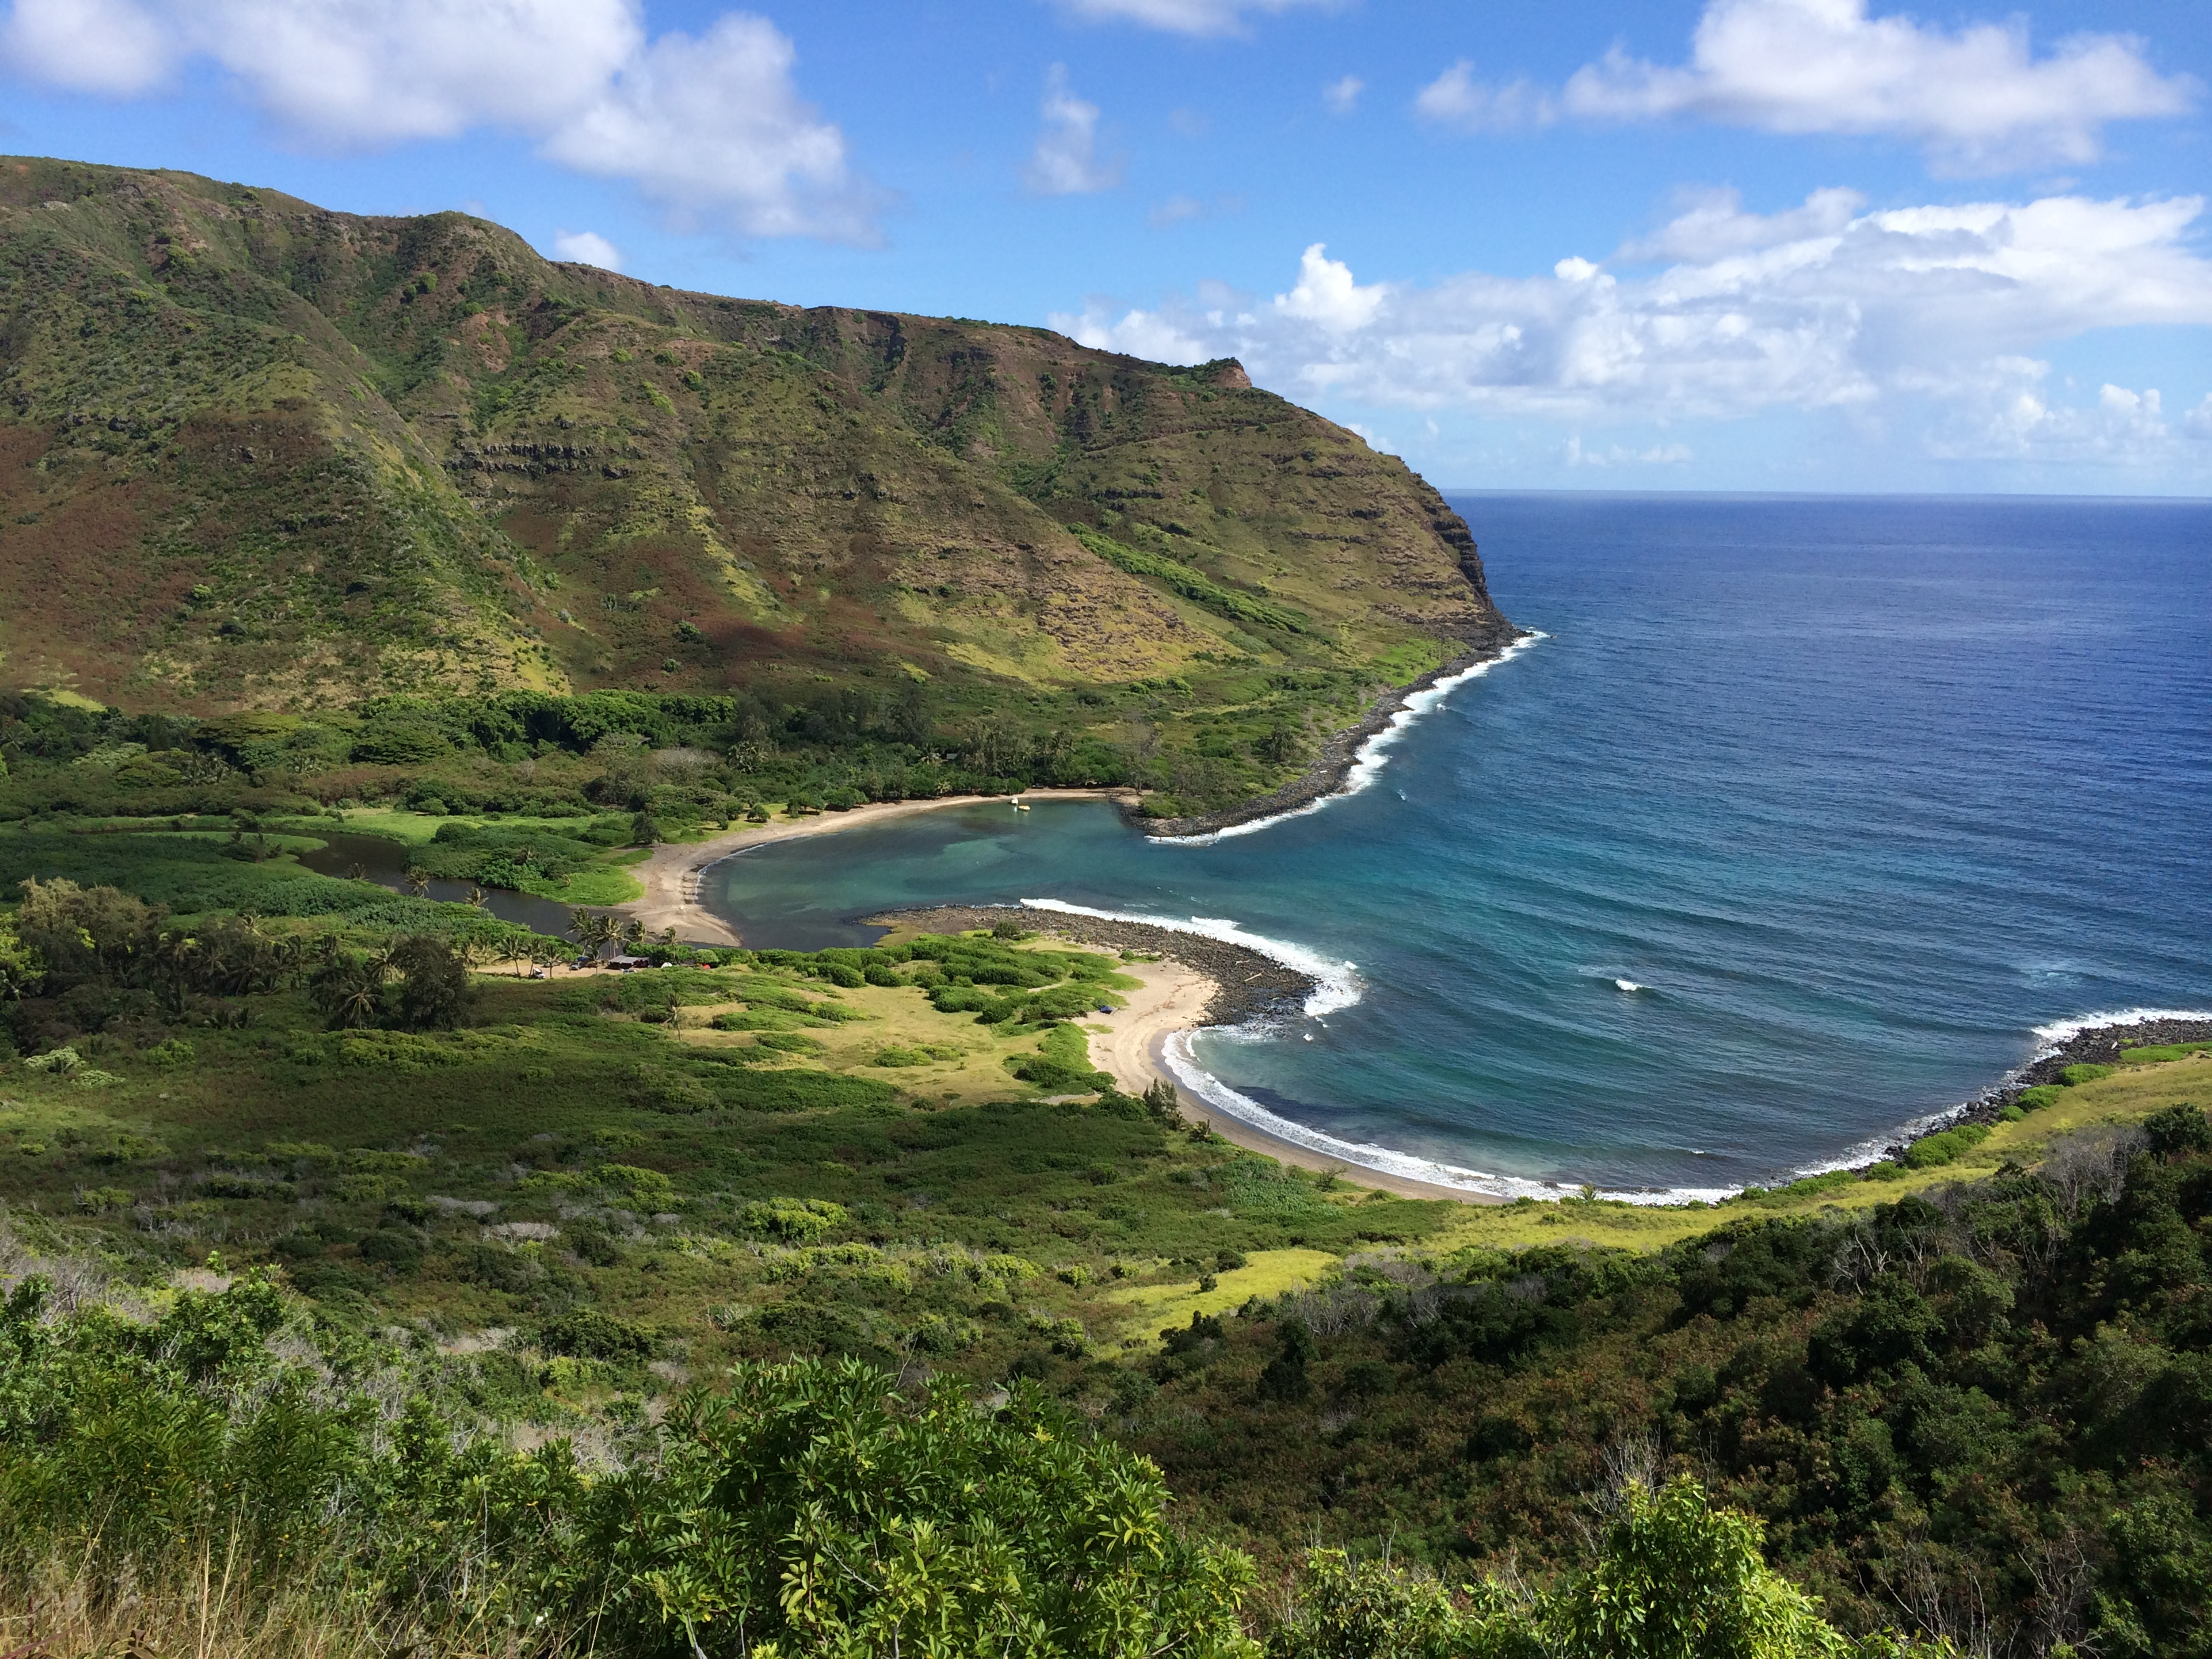 Molokai is the Most Interesting Island in Hawaii